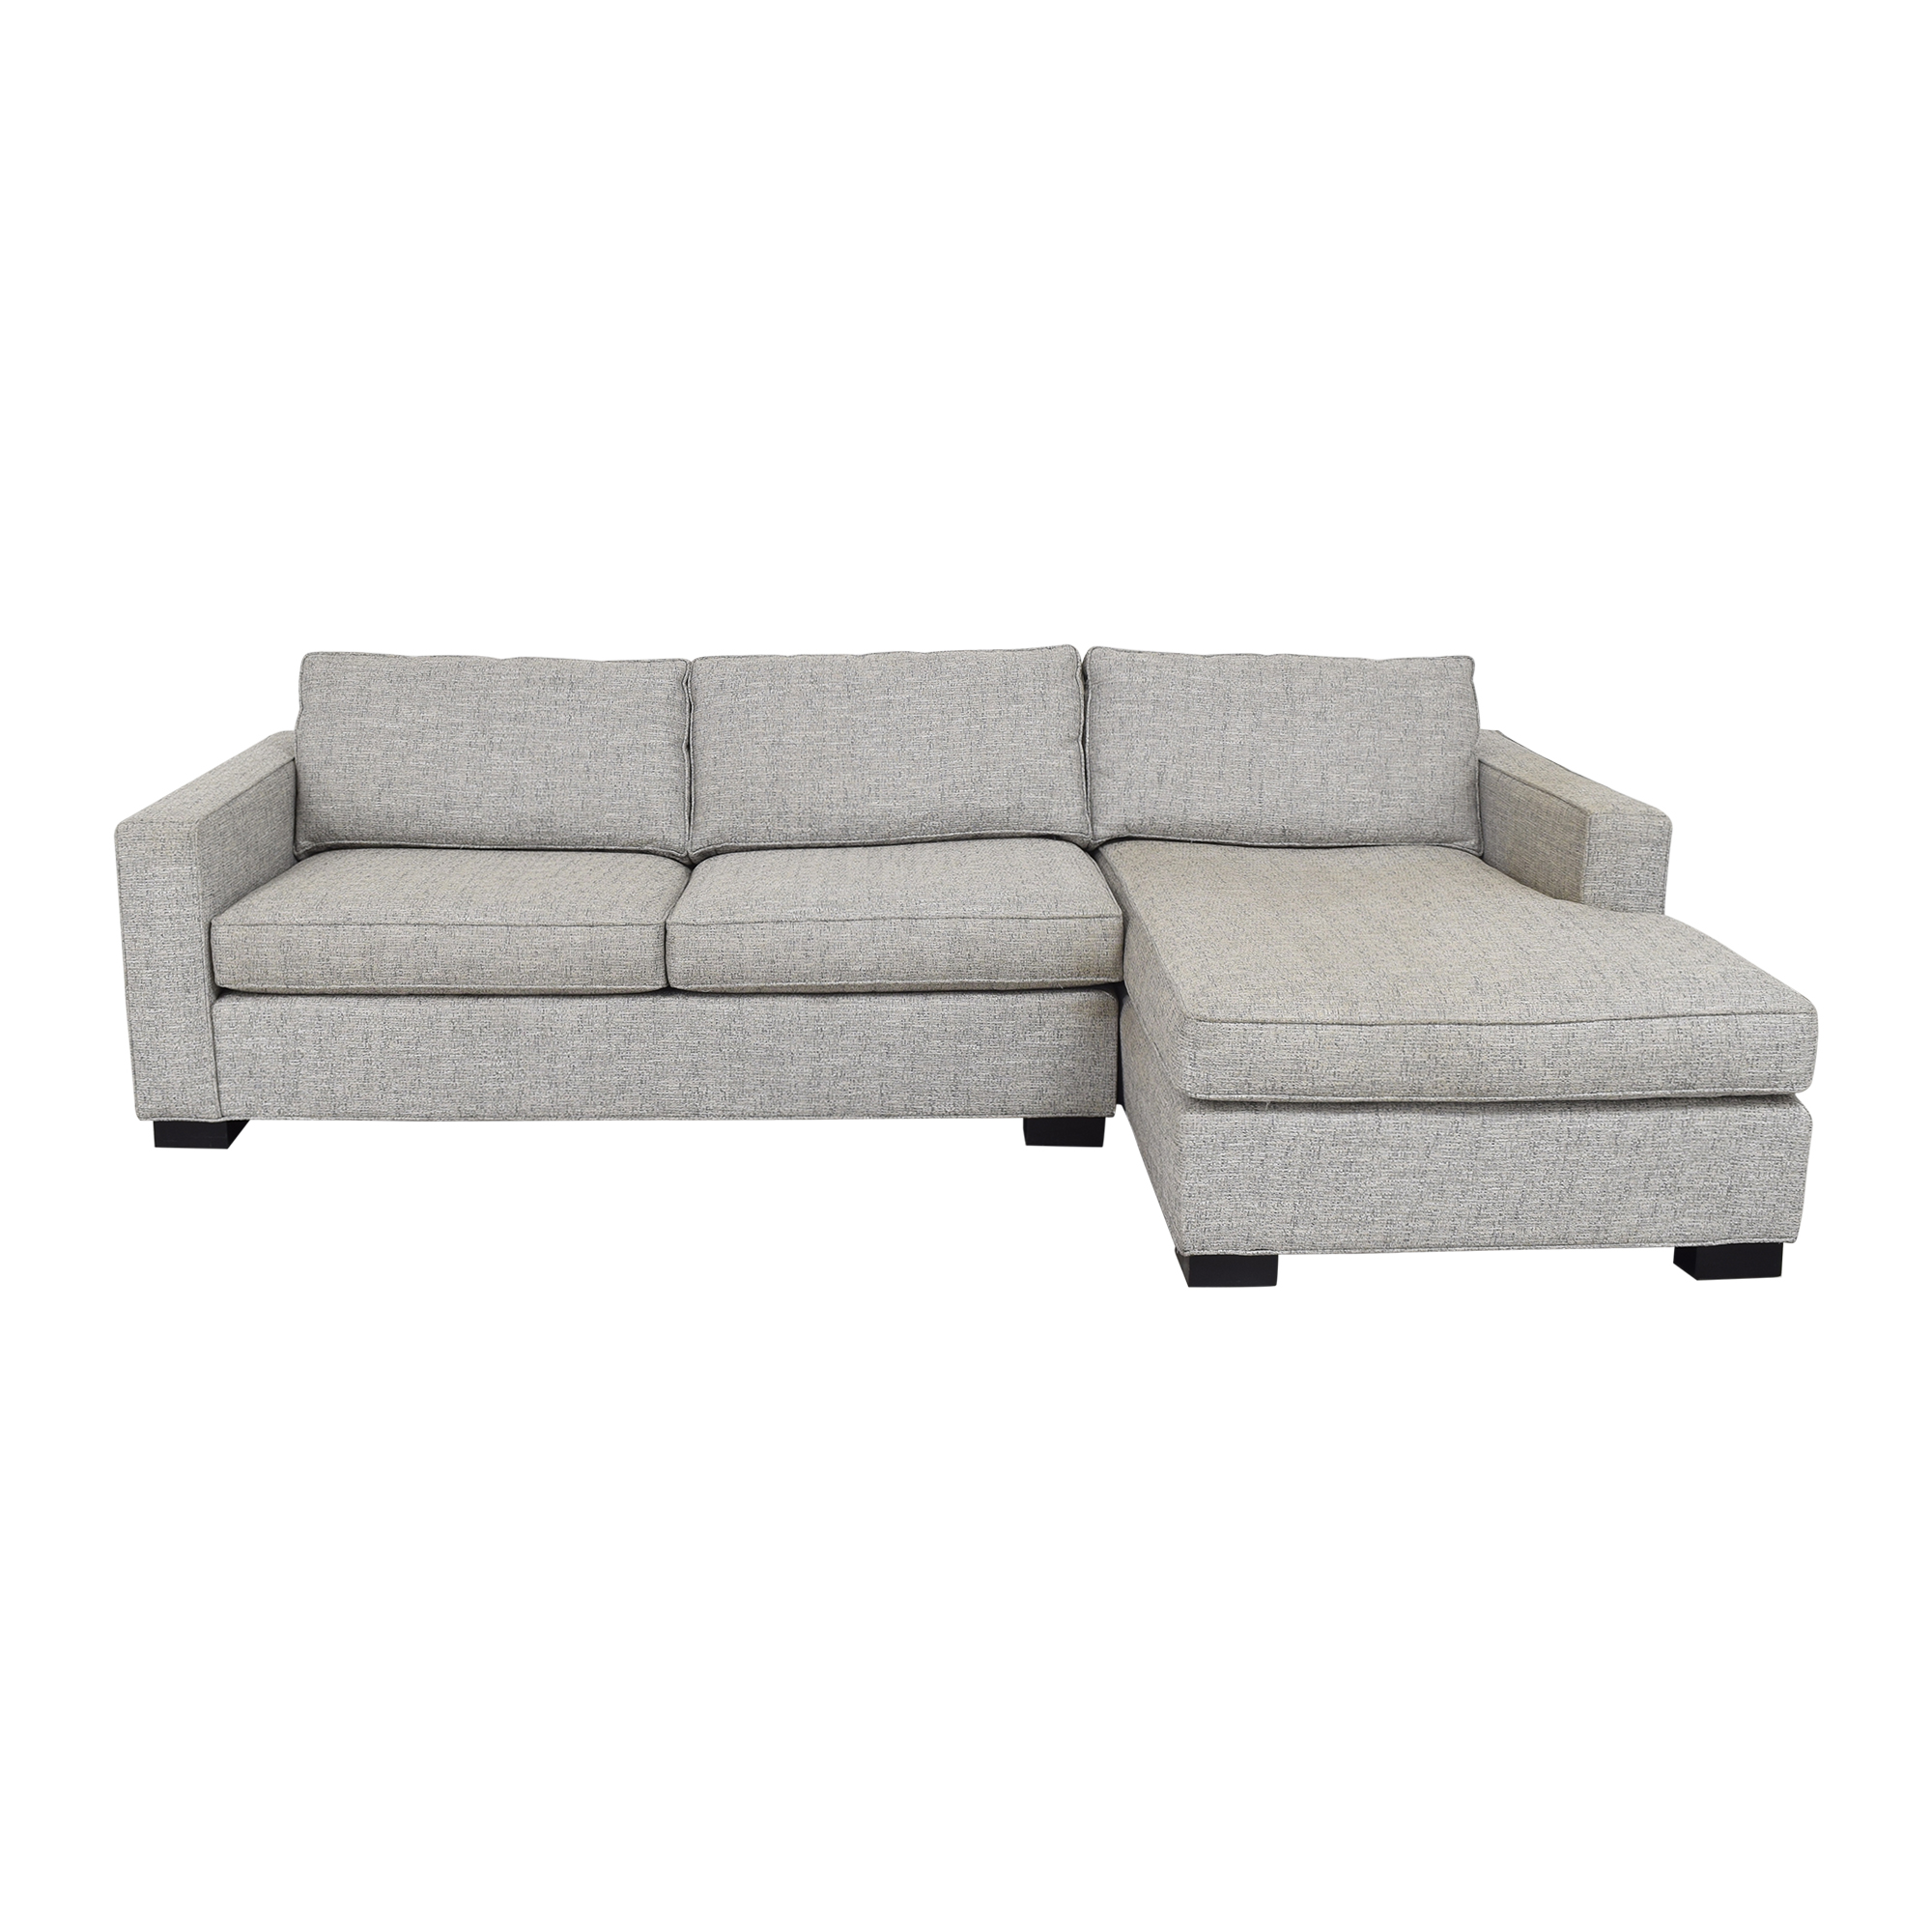 Mitchell Gold + Bob Williams Mitchell Gold + Bob Williams Chaise Sectional coupon